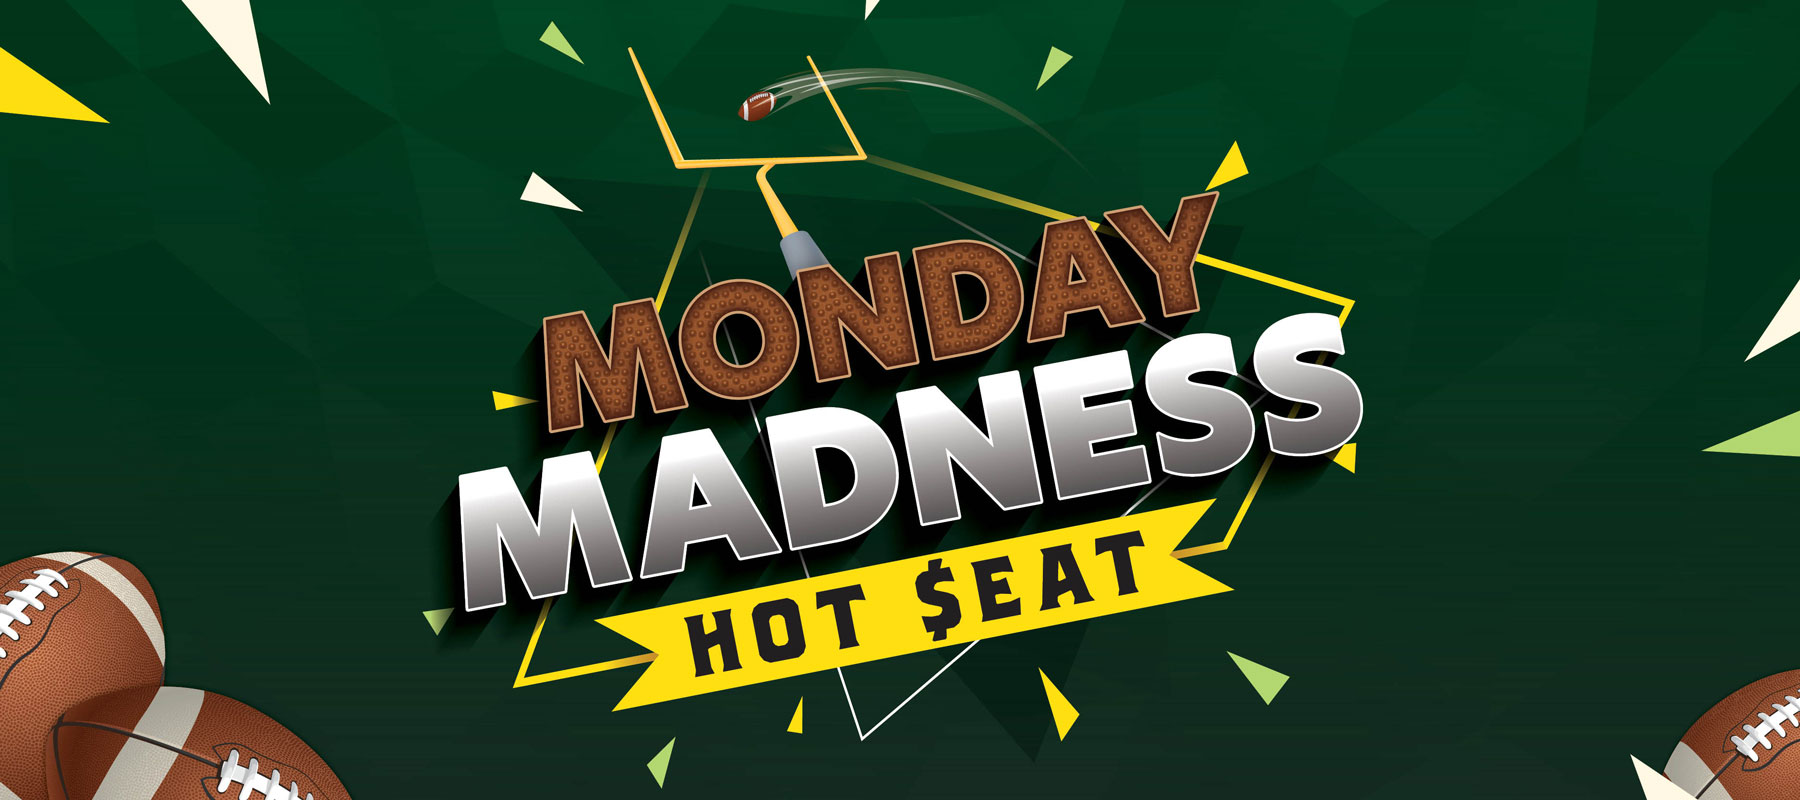 Monday Madness Hot Seat